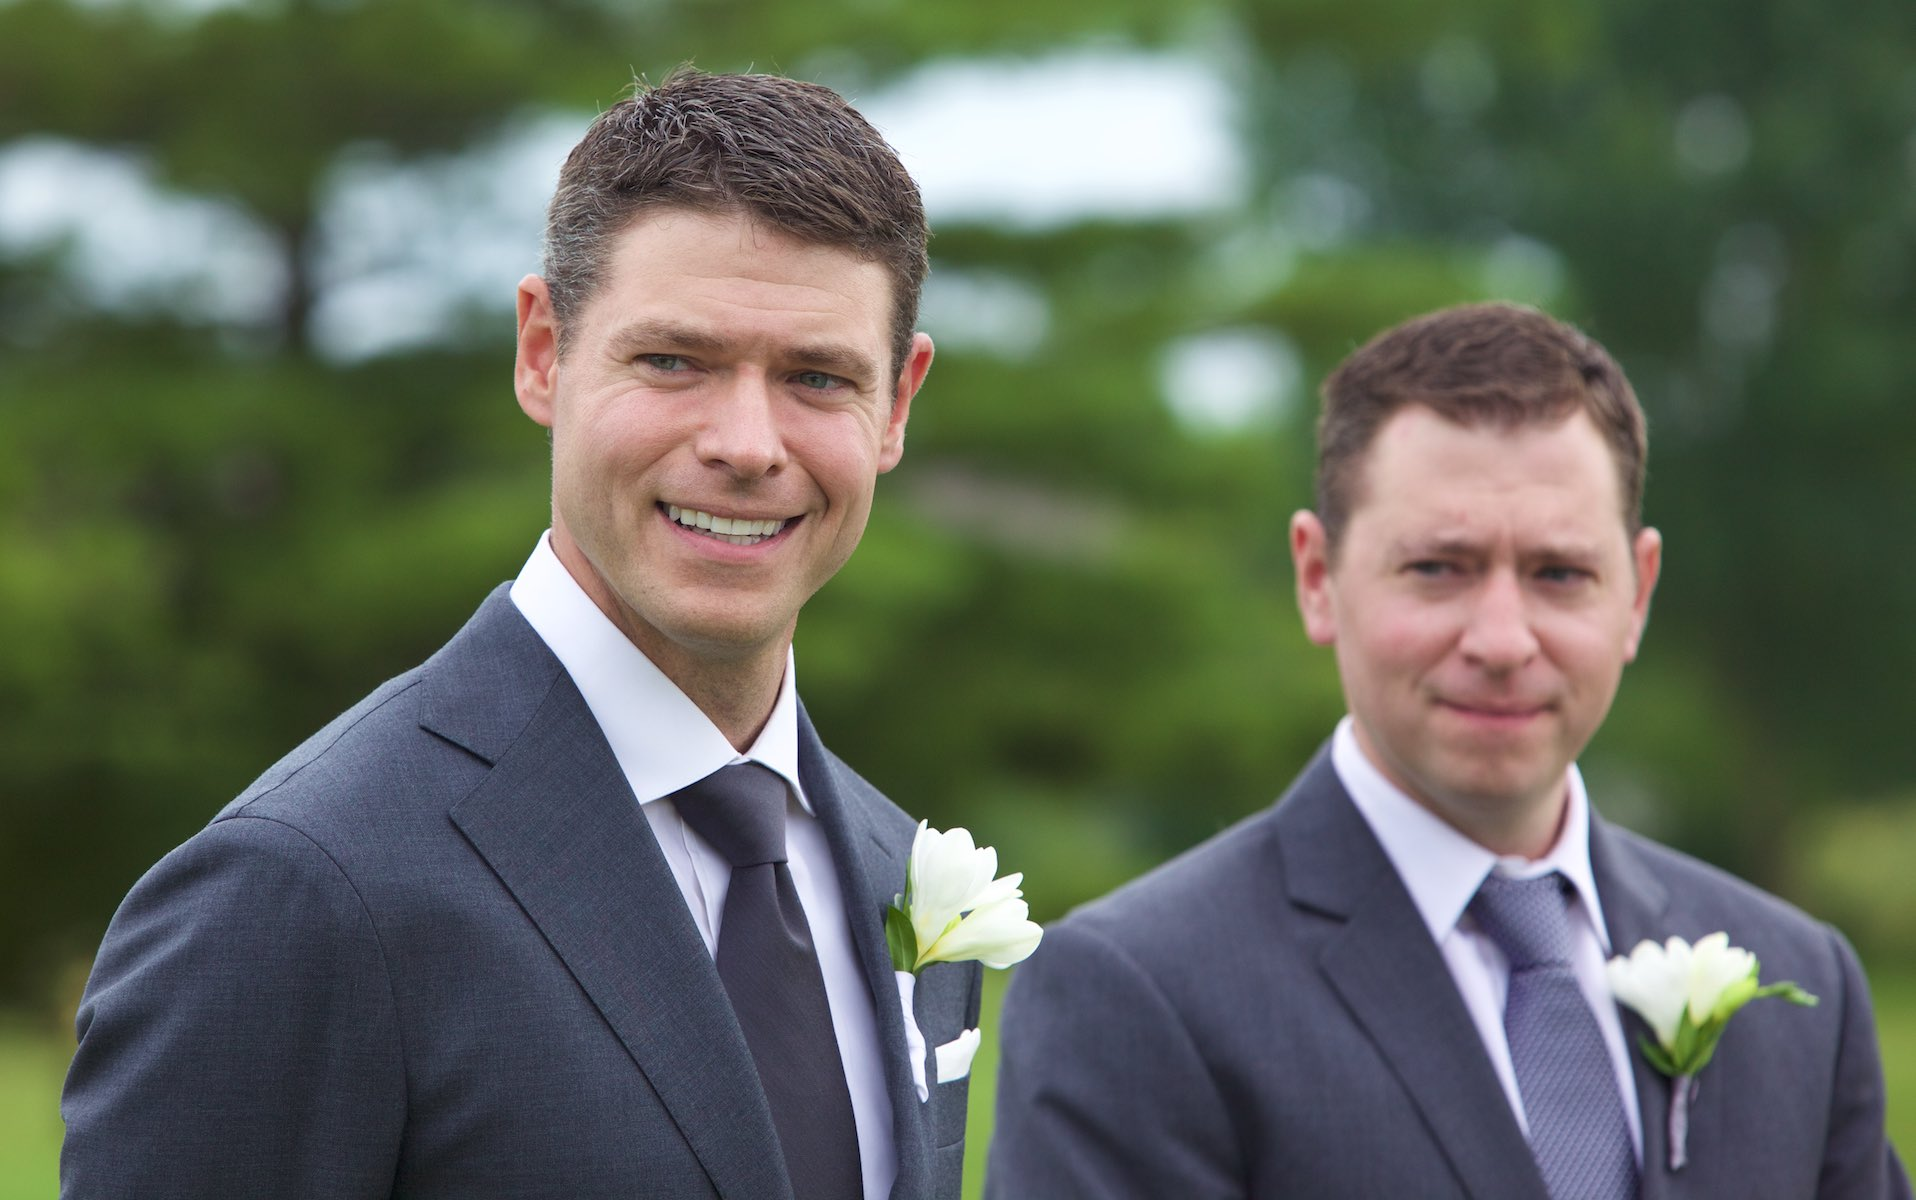 Groom with his best man (and twin brother), wedding of Emi & Daniel at Geneva National Golf Club in Lake Geneva, Wisconsin. Wedding photography by Steve & Tiffany Warmowski.